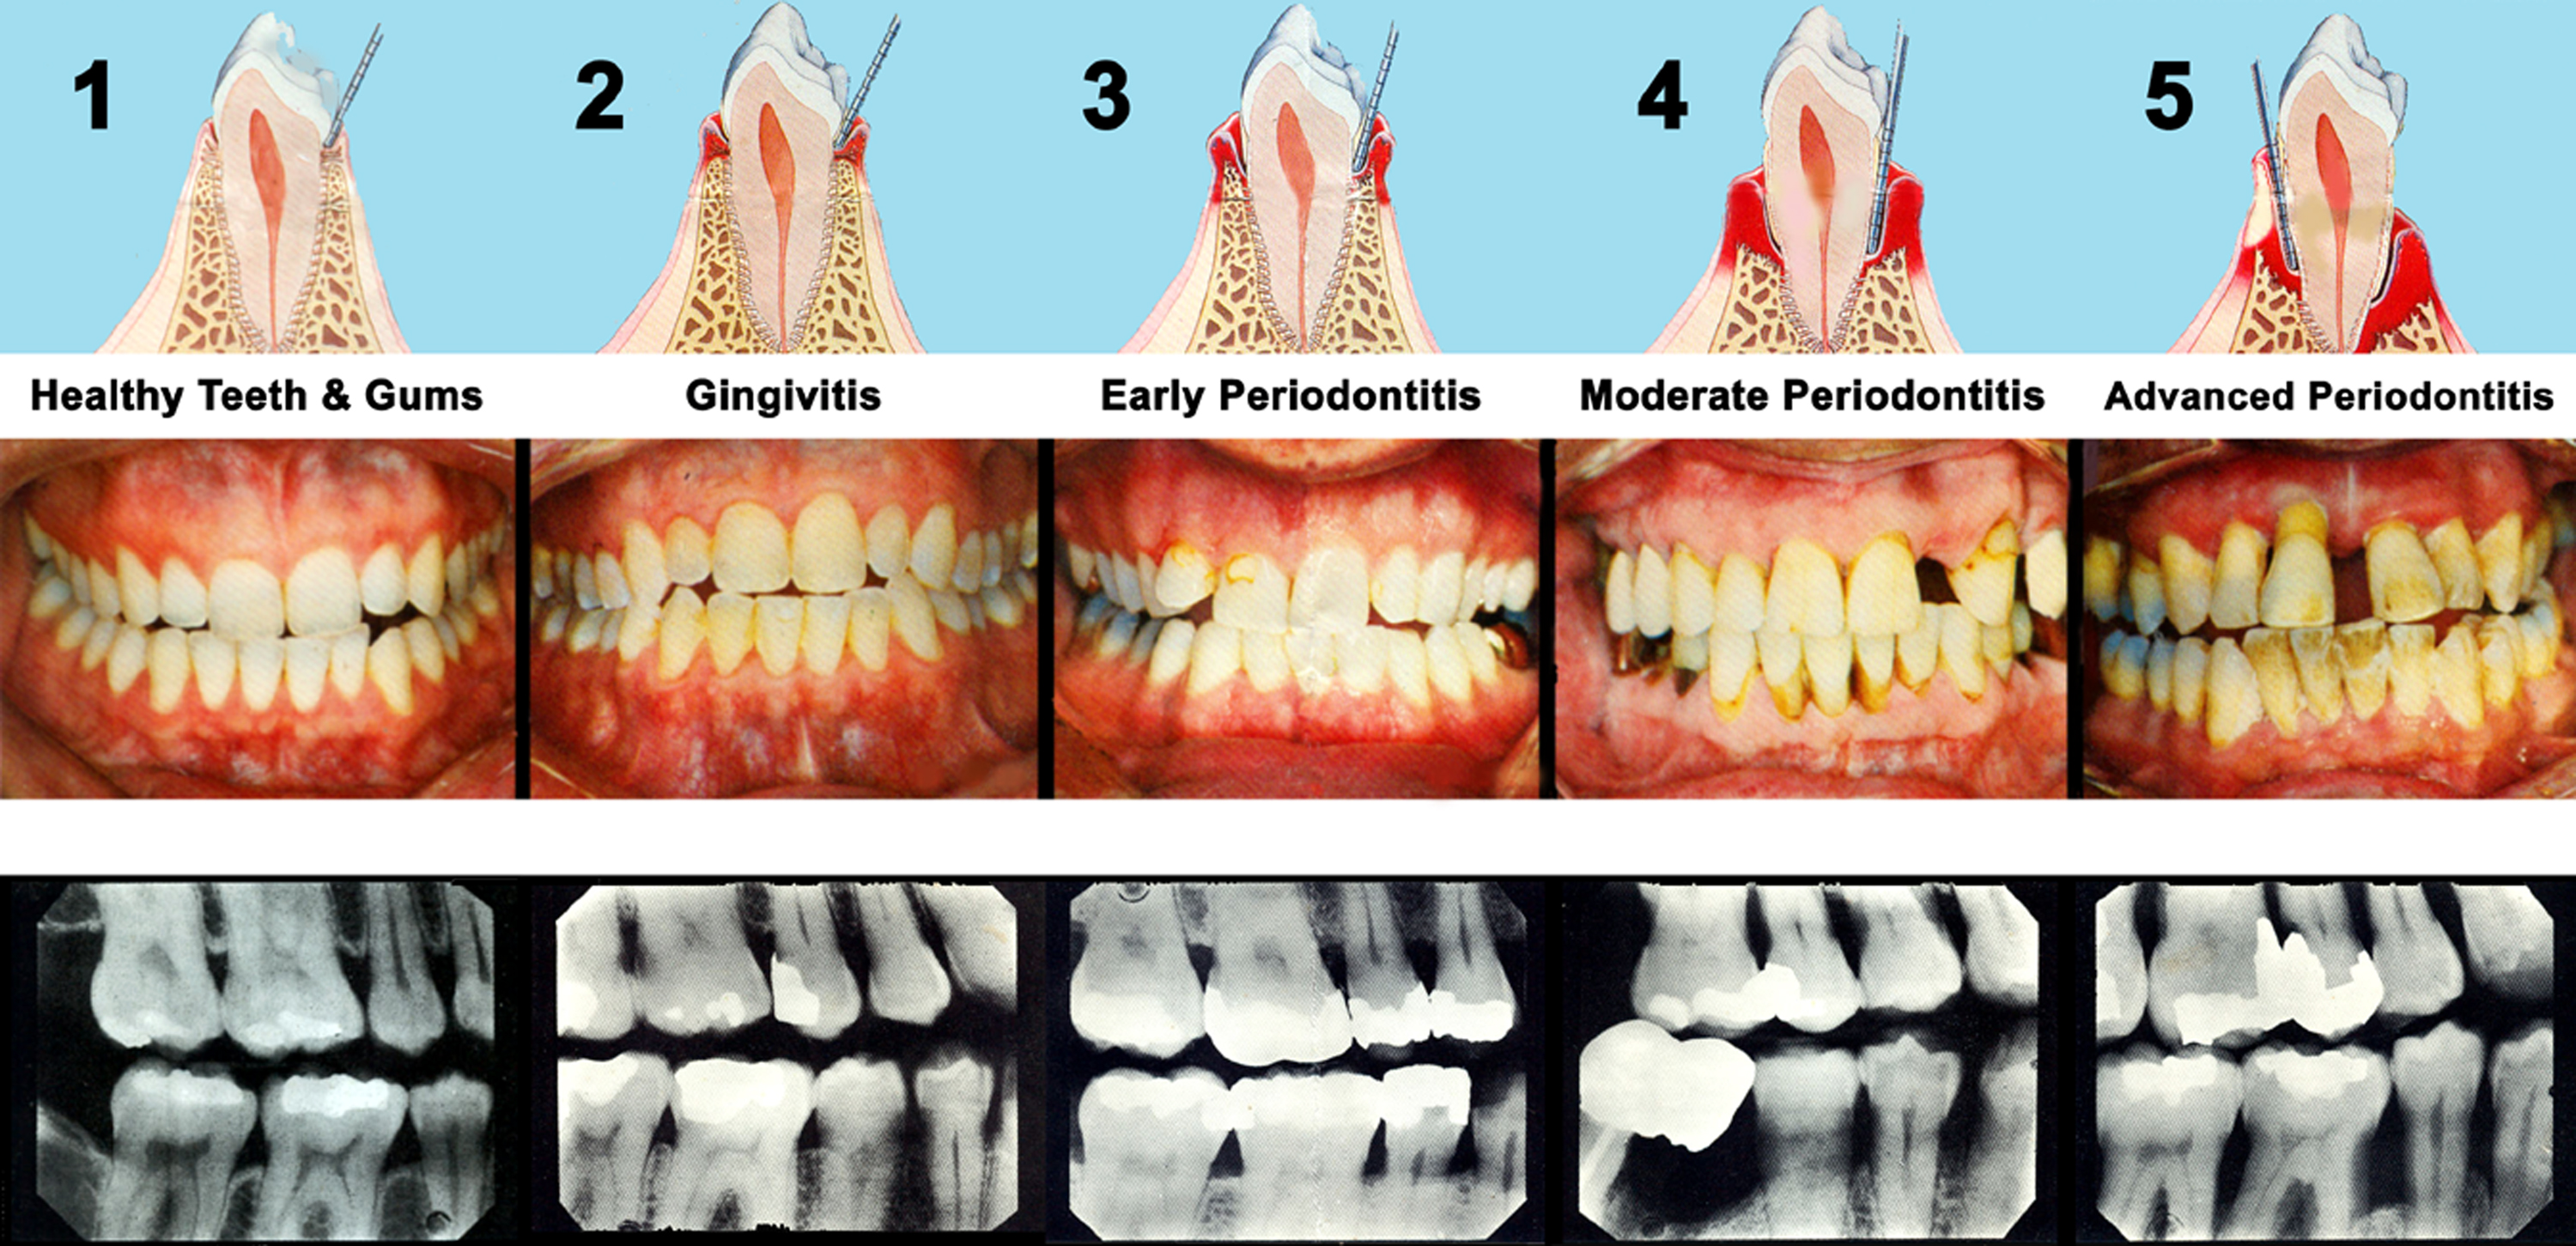 5 stages of gum disease